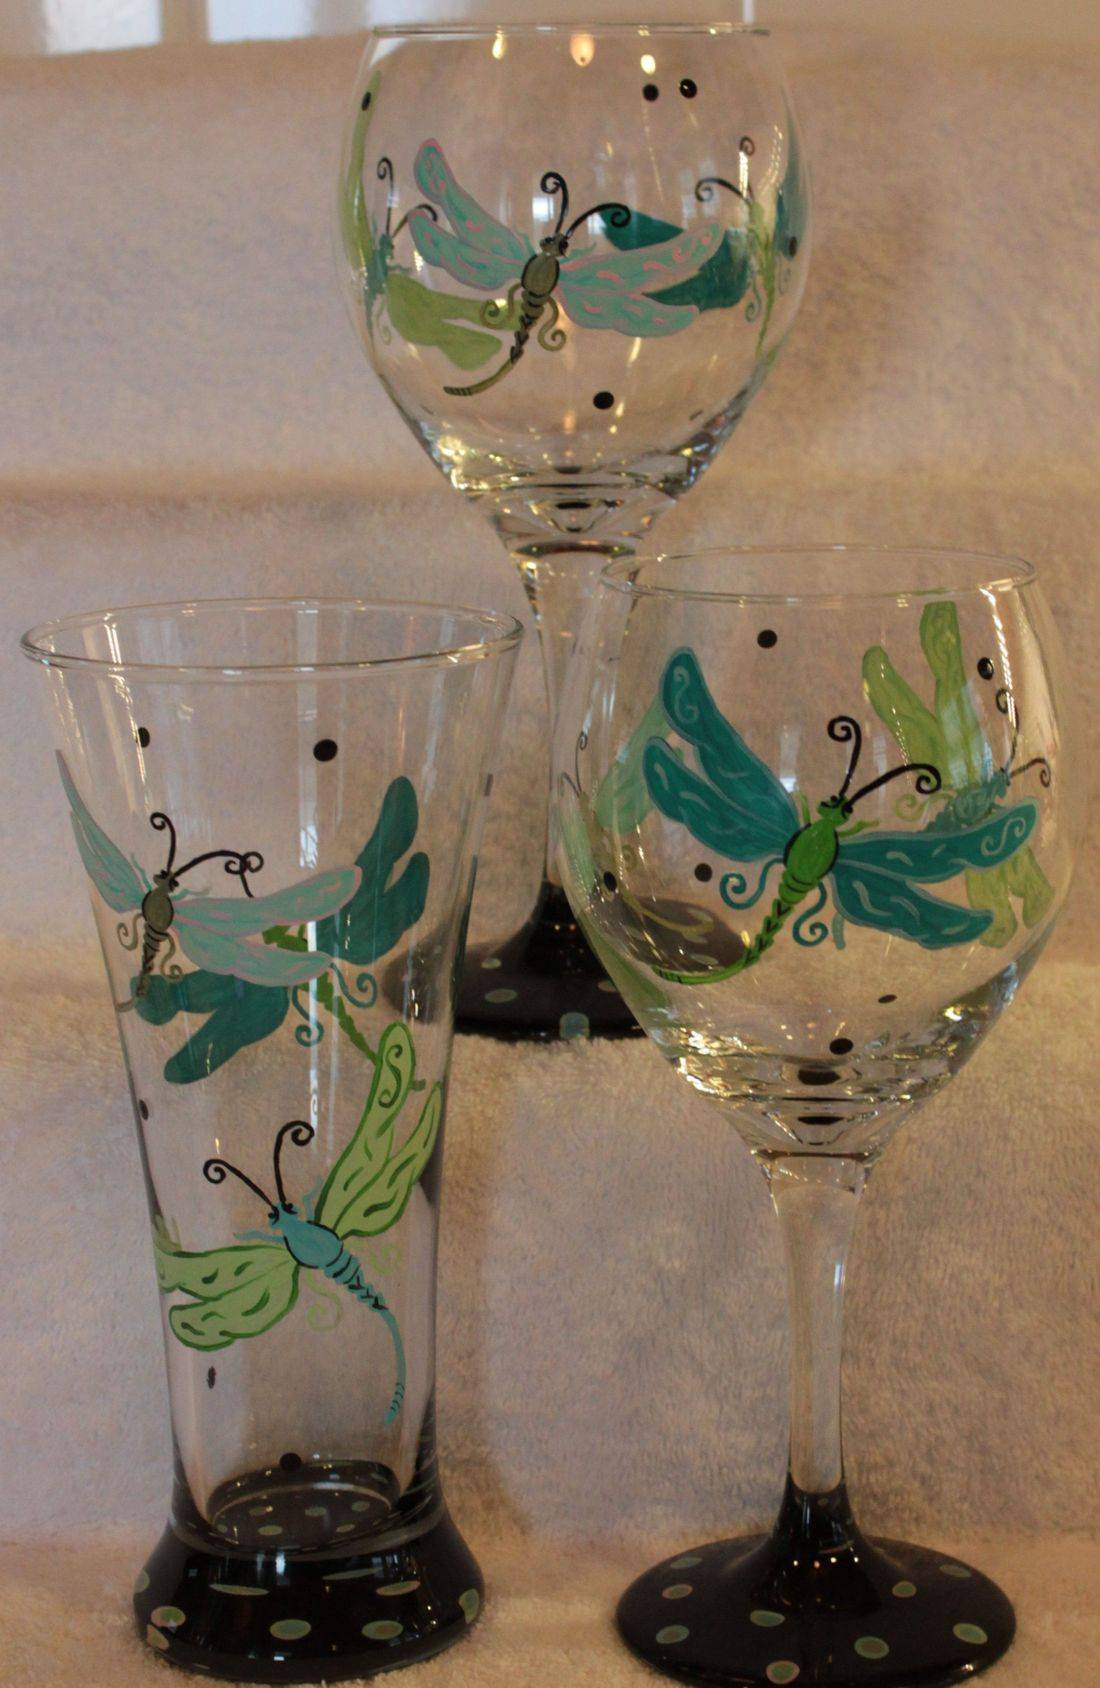 dragonfly wine glass, dragonfly beer glass